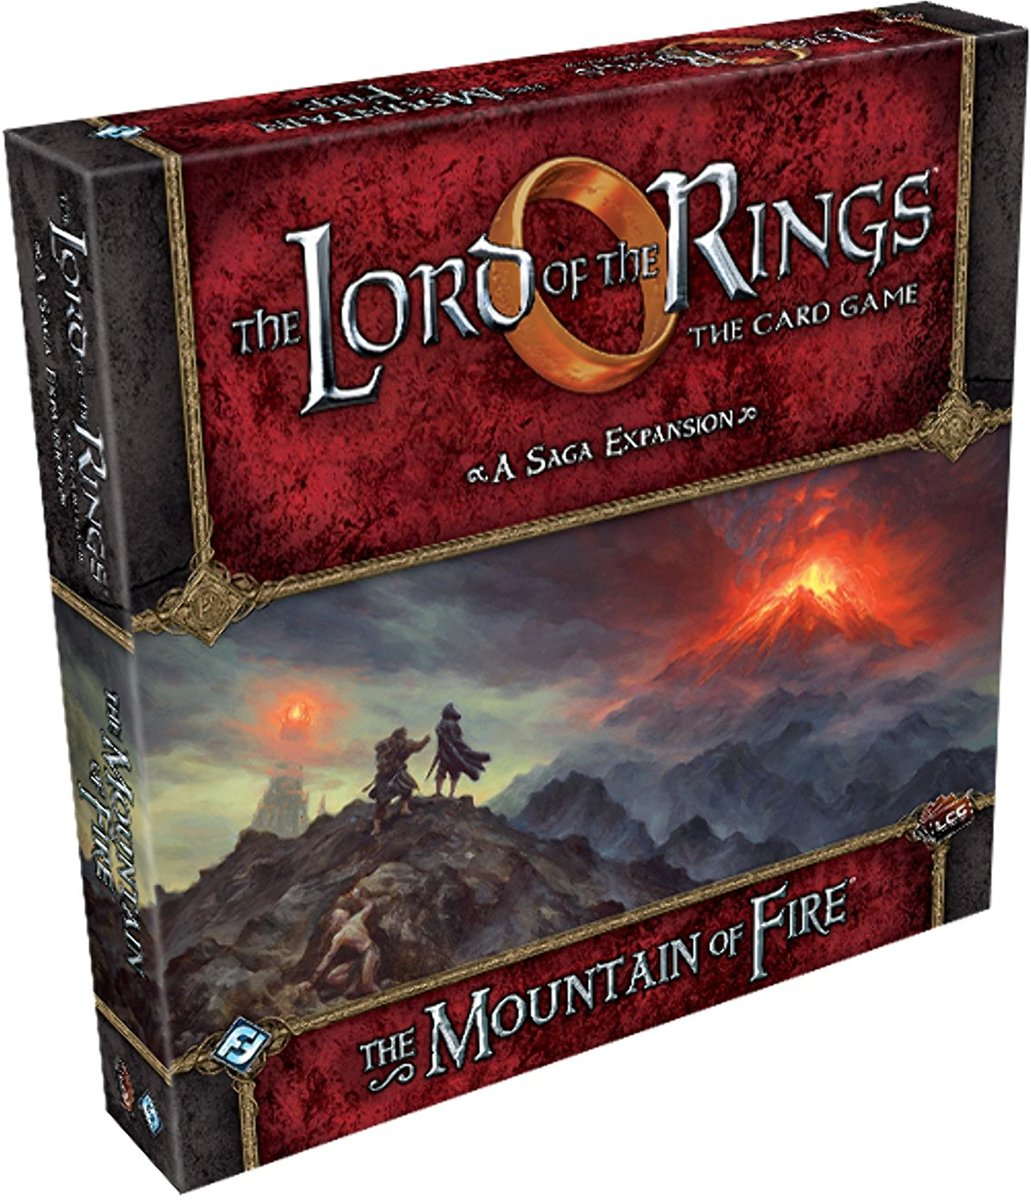 Lord of the Rings The Card Game: The Mountain of Fire Saga Expansion